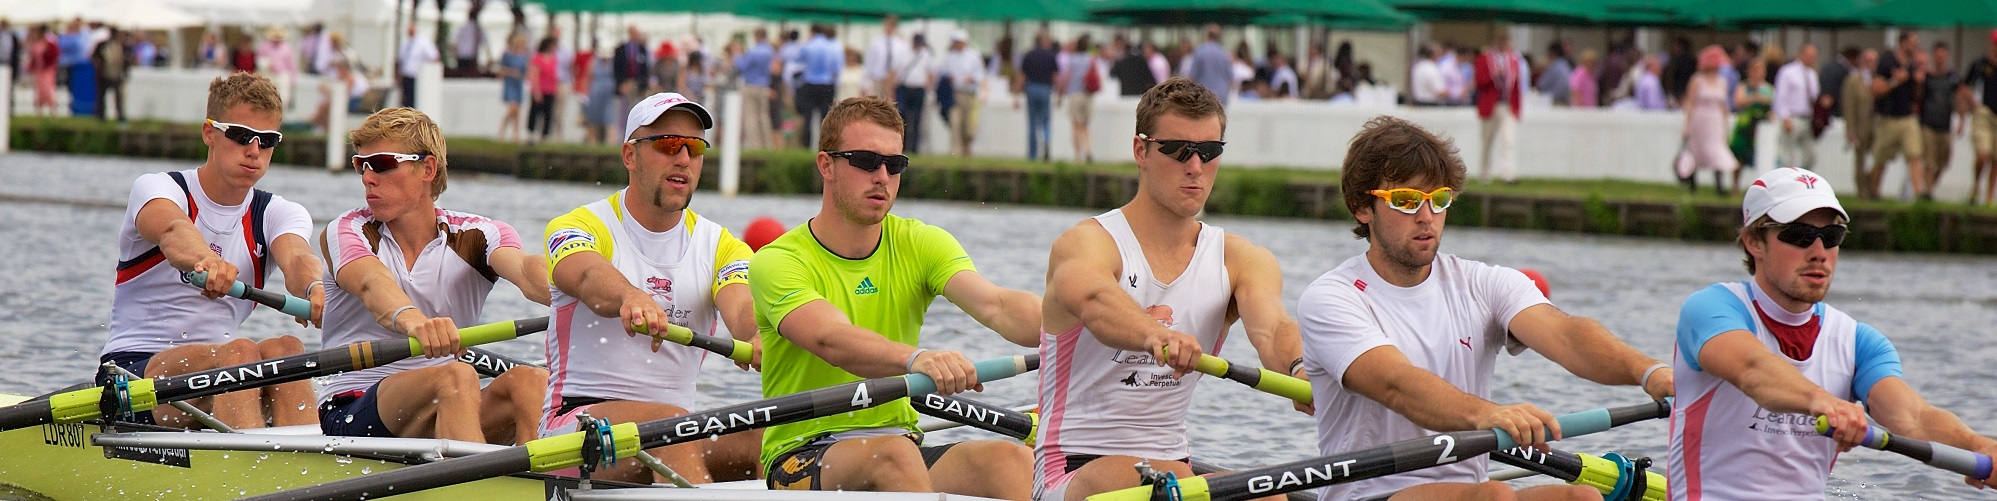 henley regatta rowers on the river